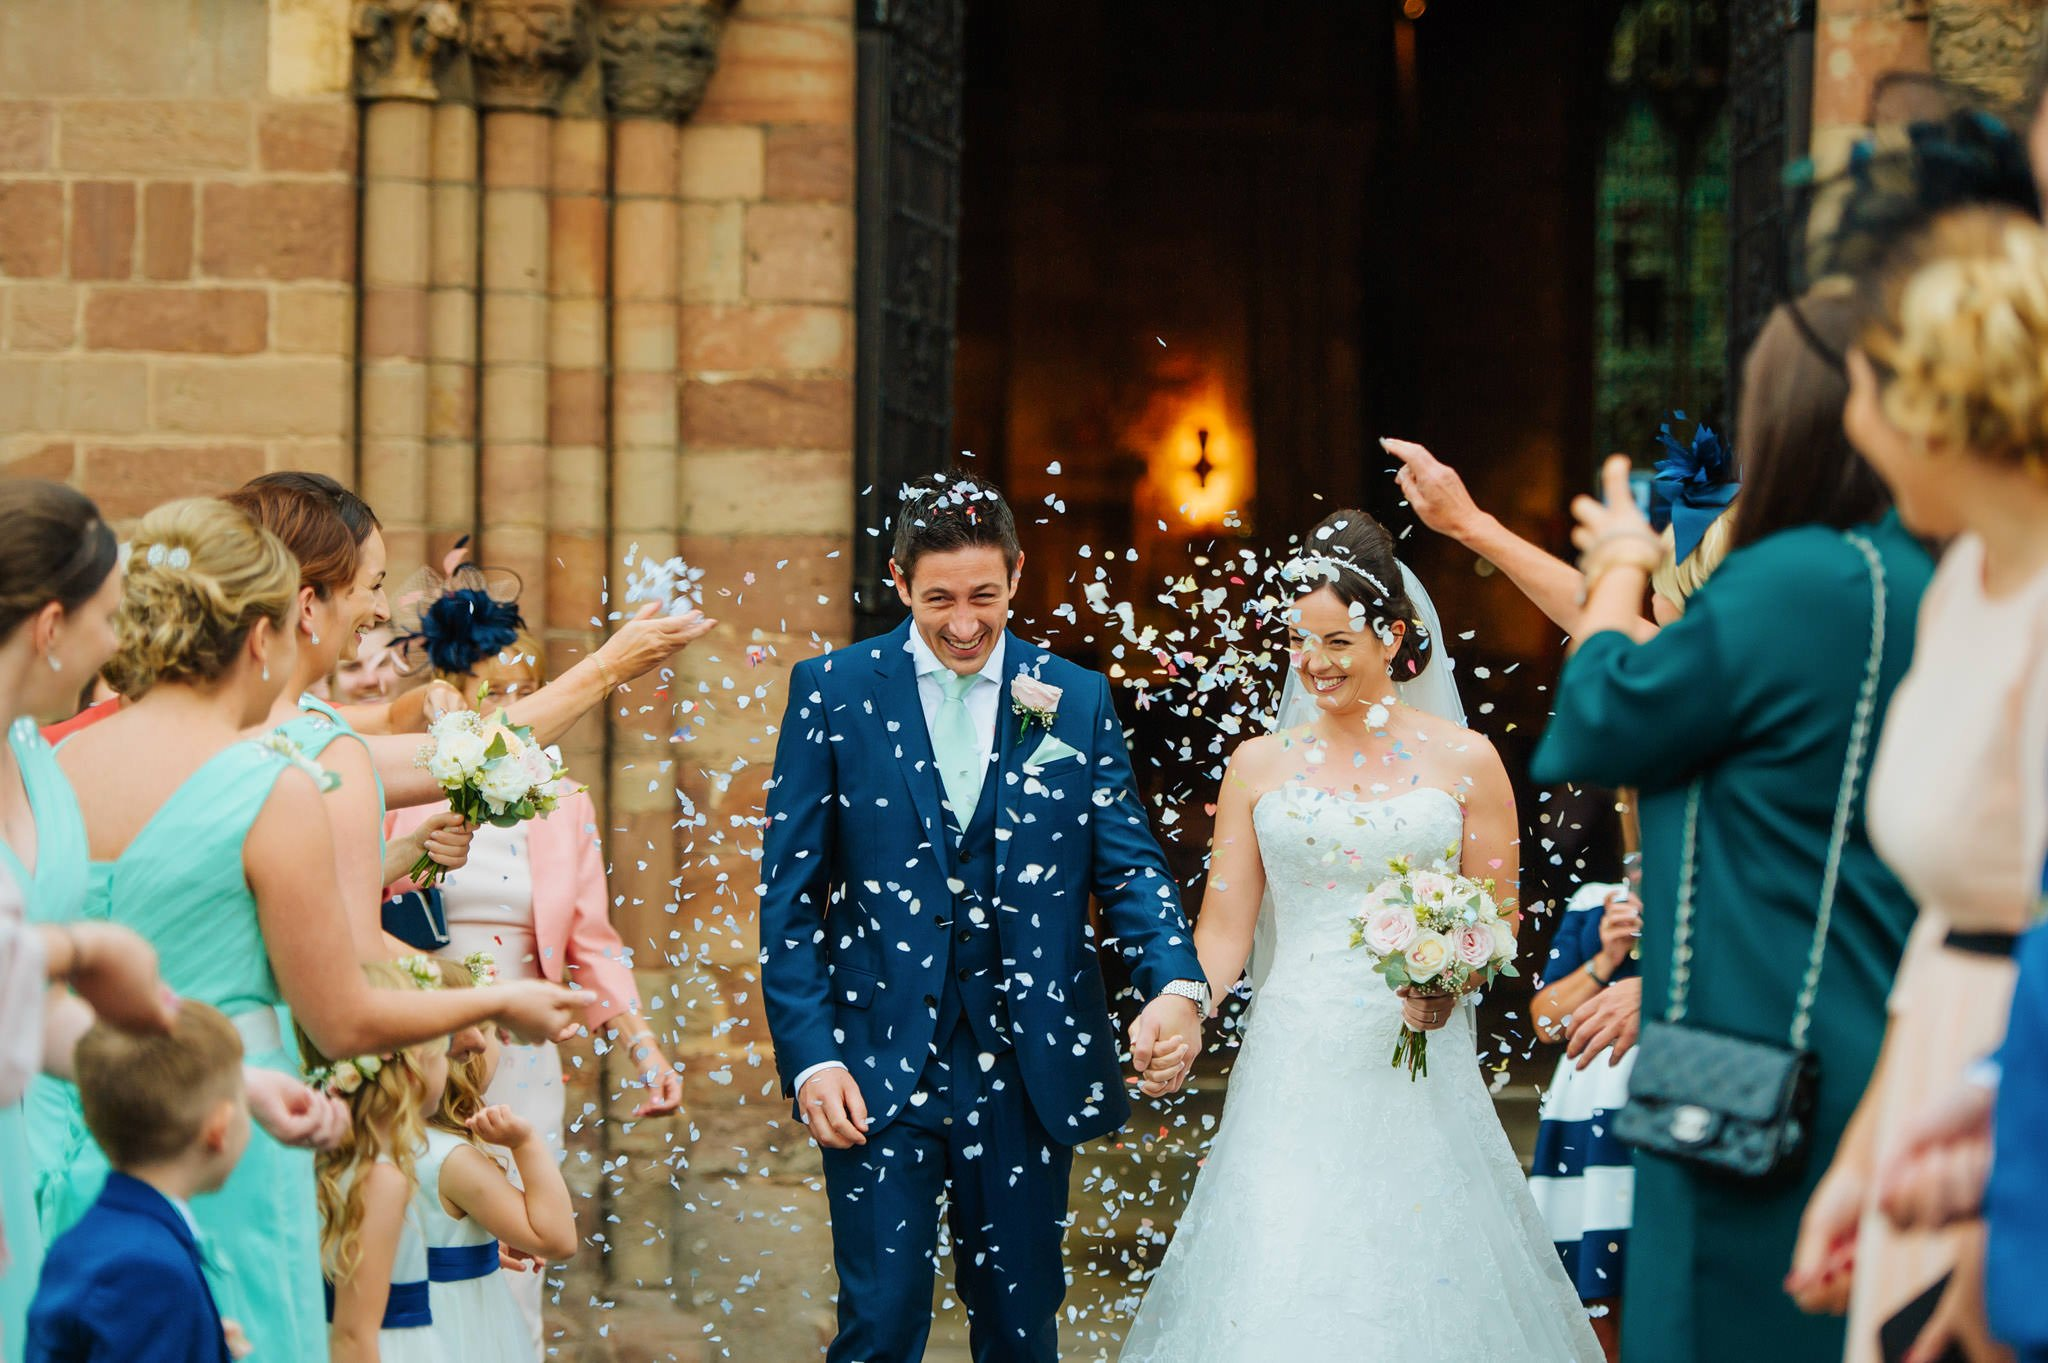 eastnor castle wedding pictures 40 - Eastnor Castle wedding photographer Herefordshire, West Midlands - Sarah + Dean